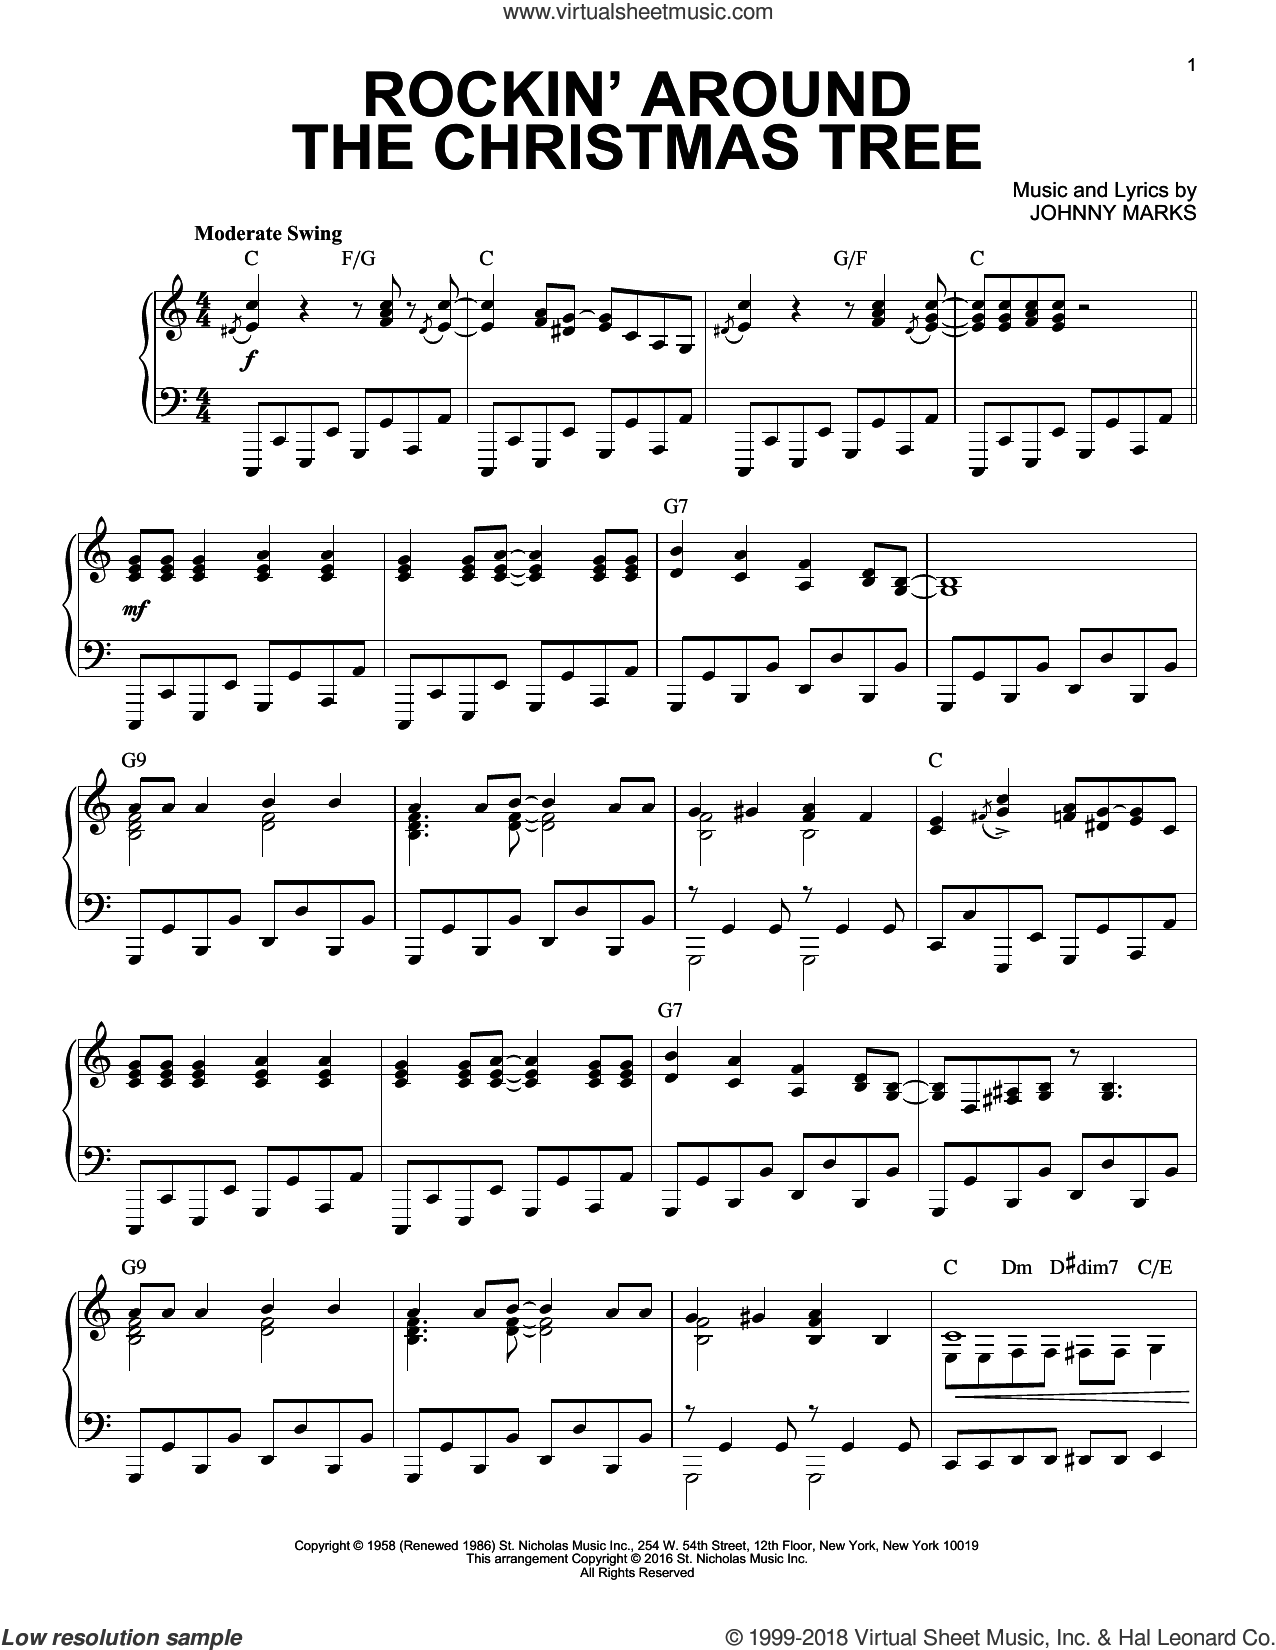 Rockin' Around The Christmas Tree sheet music for piano solo by Johnny Marks, LeAnn Rimes and Toby Keith, intermediate skill level